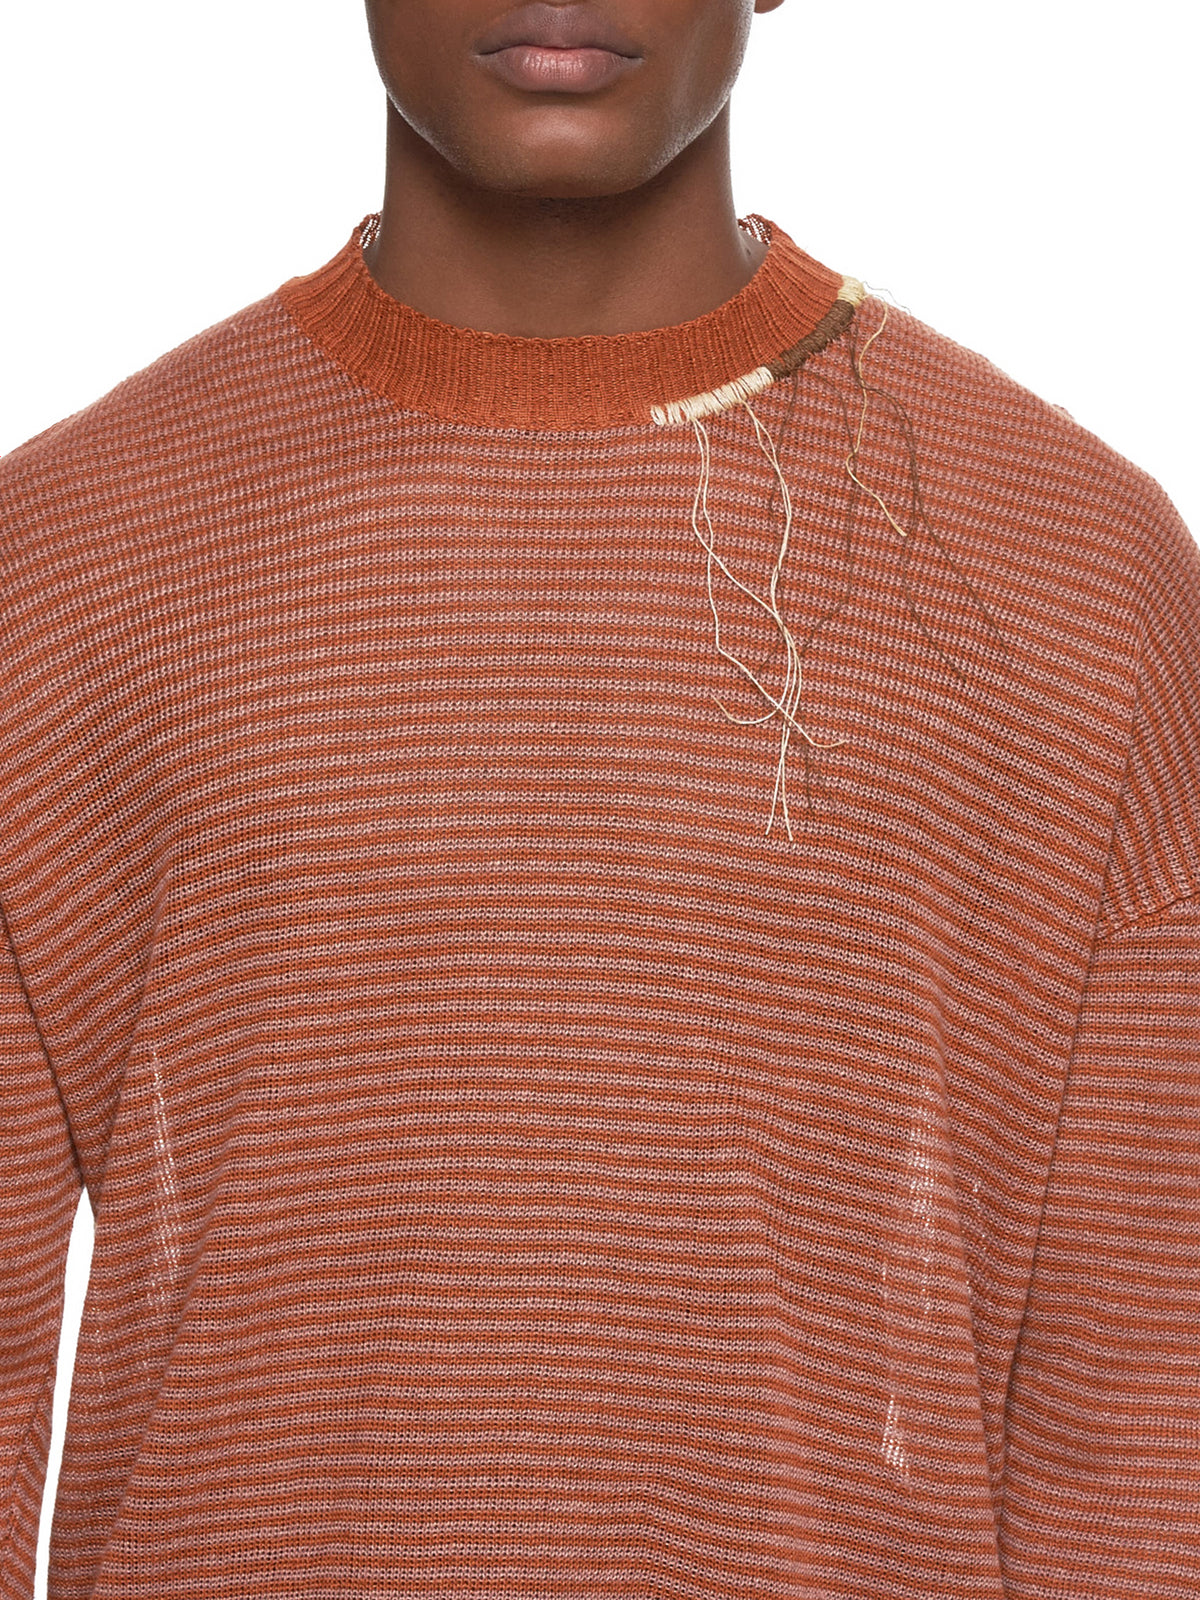 Federico Curradi Sweater - Hlorenzo Detail 2